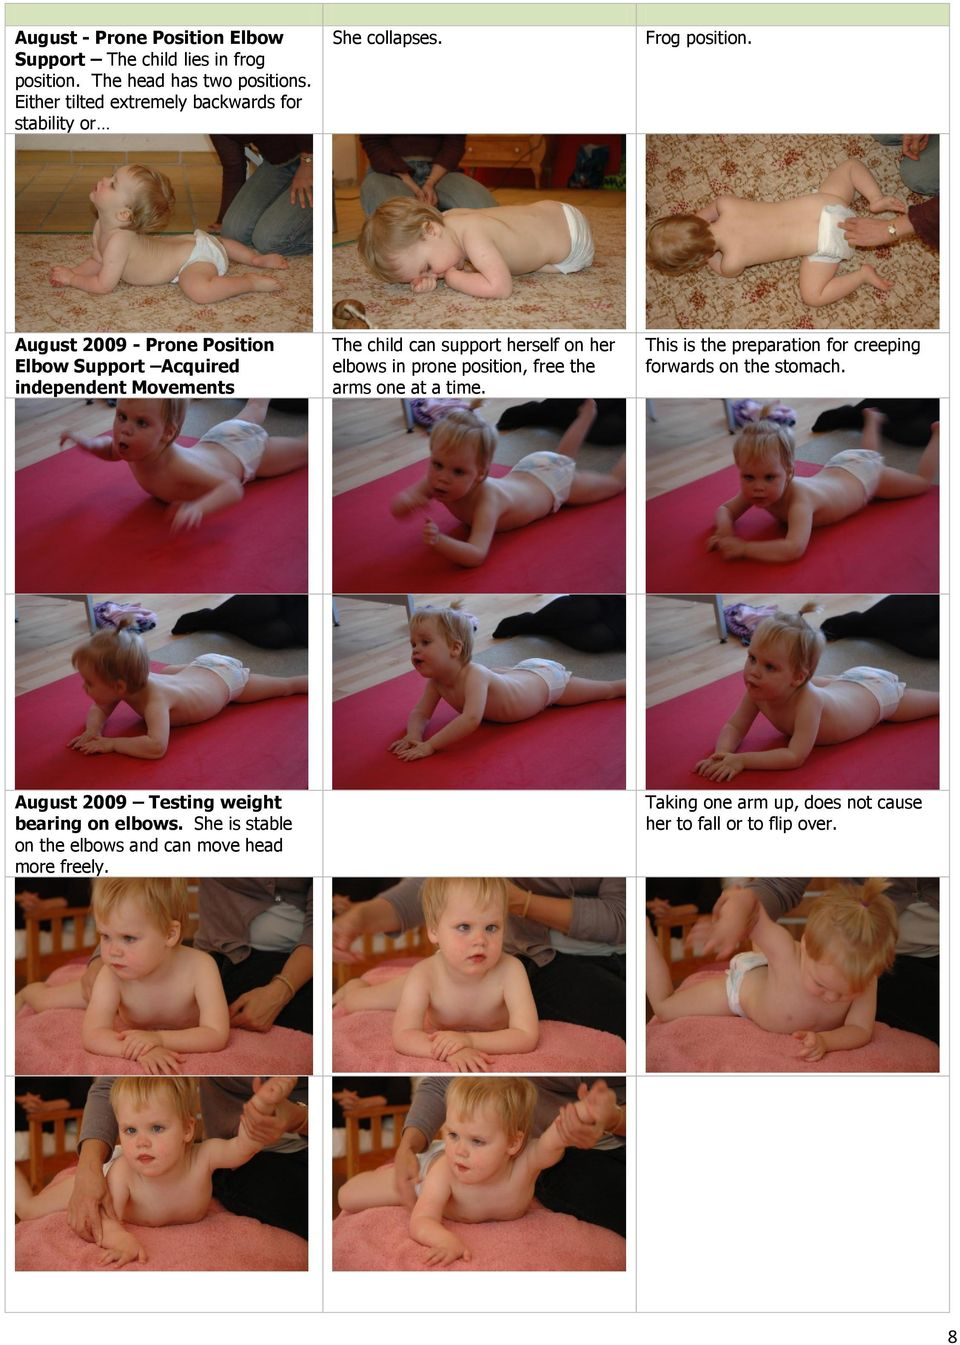 August 2009 - Prone Position Elbow Support Acquired independent Movements The child can support herself on her elbows in prone position, free